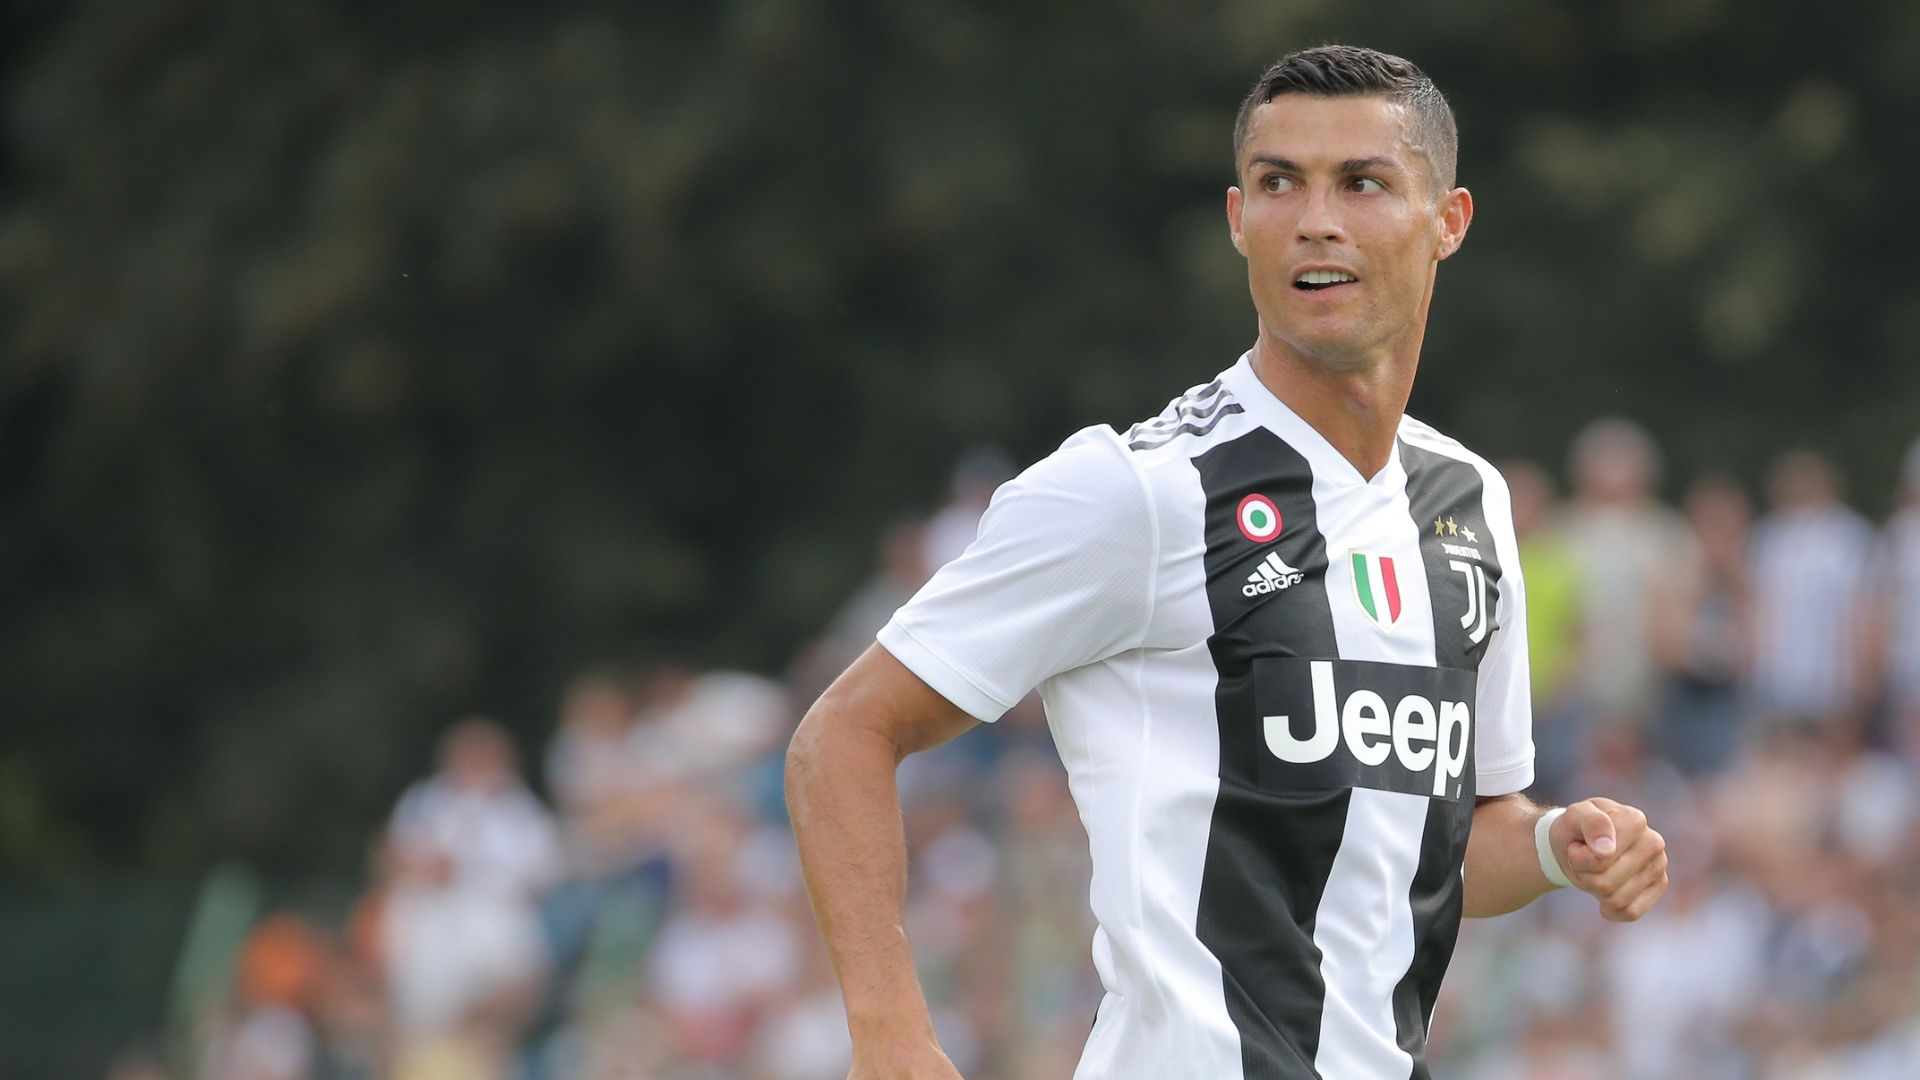 Roma sell big stars as The Ronaldo Show rolls into town